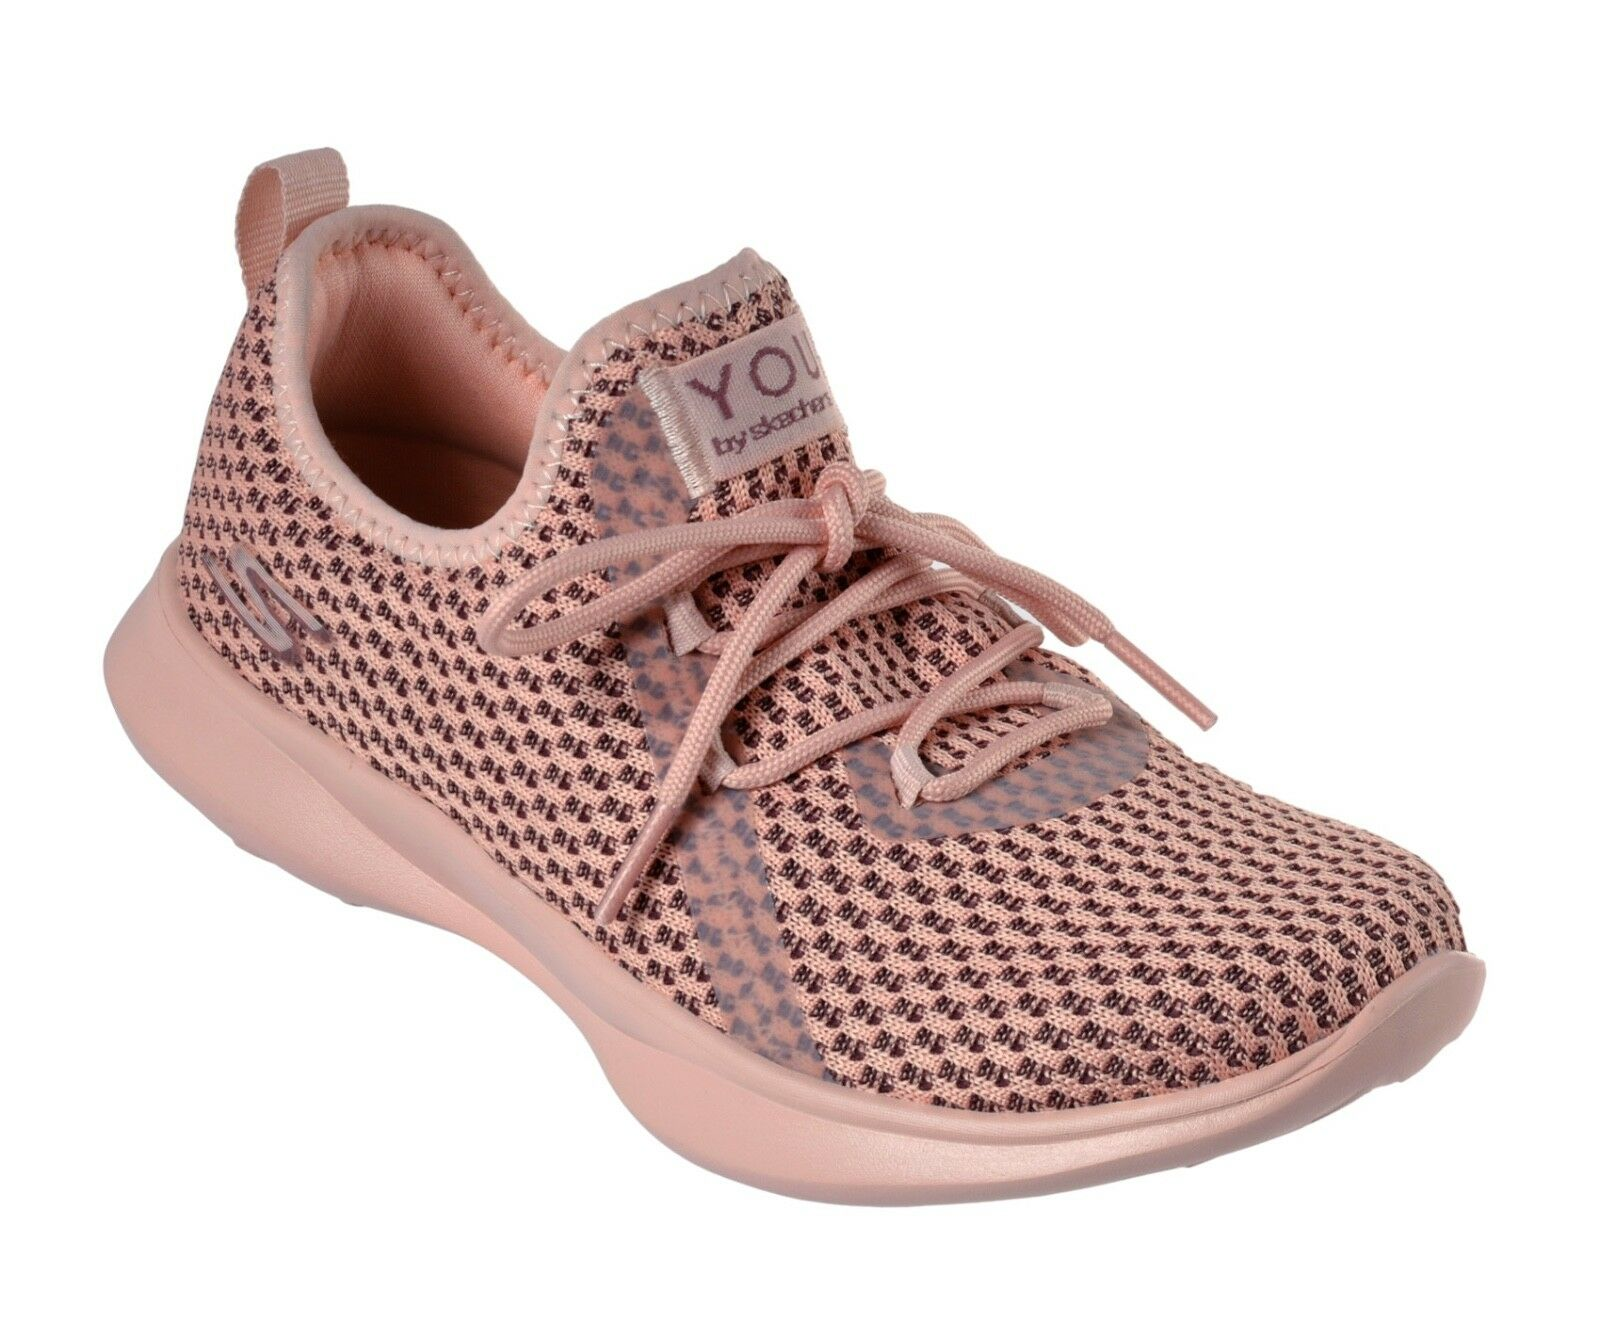 Skechers NEU You Serene Tranquility pink comfort fashion schuhe trainers Größe 3-8